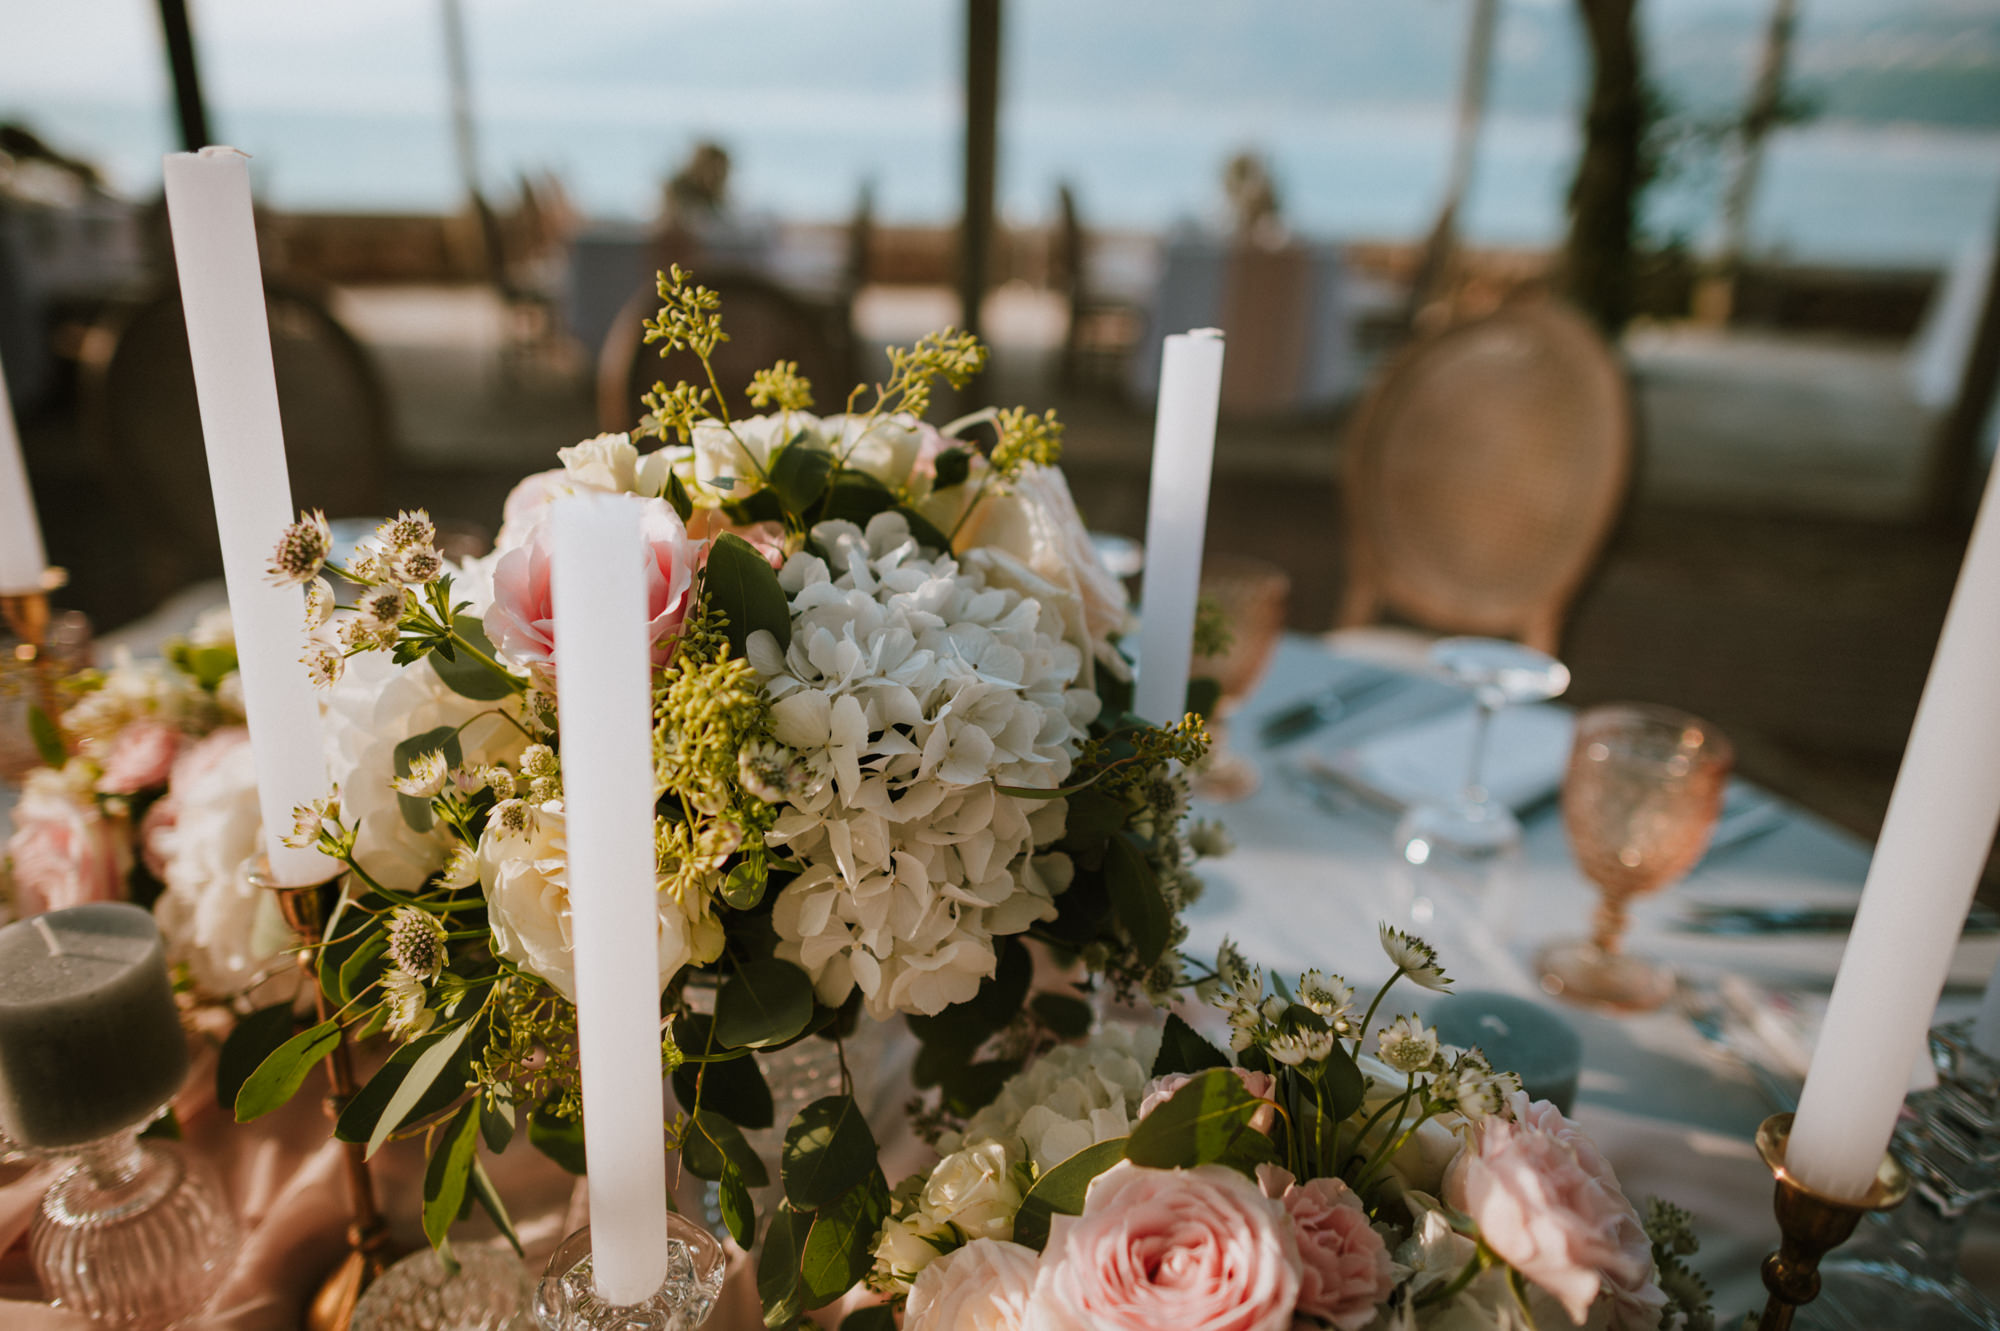 This image is a close up of the reception table set up. The flower arrangements are a mix of white and blush pink roses. The glasses are rose gold and there are also tall white candles on the table.